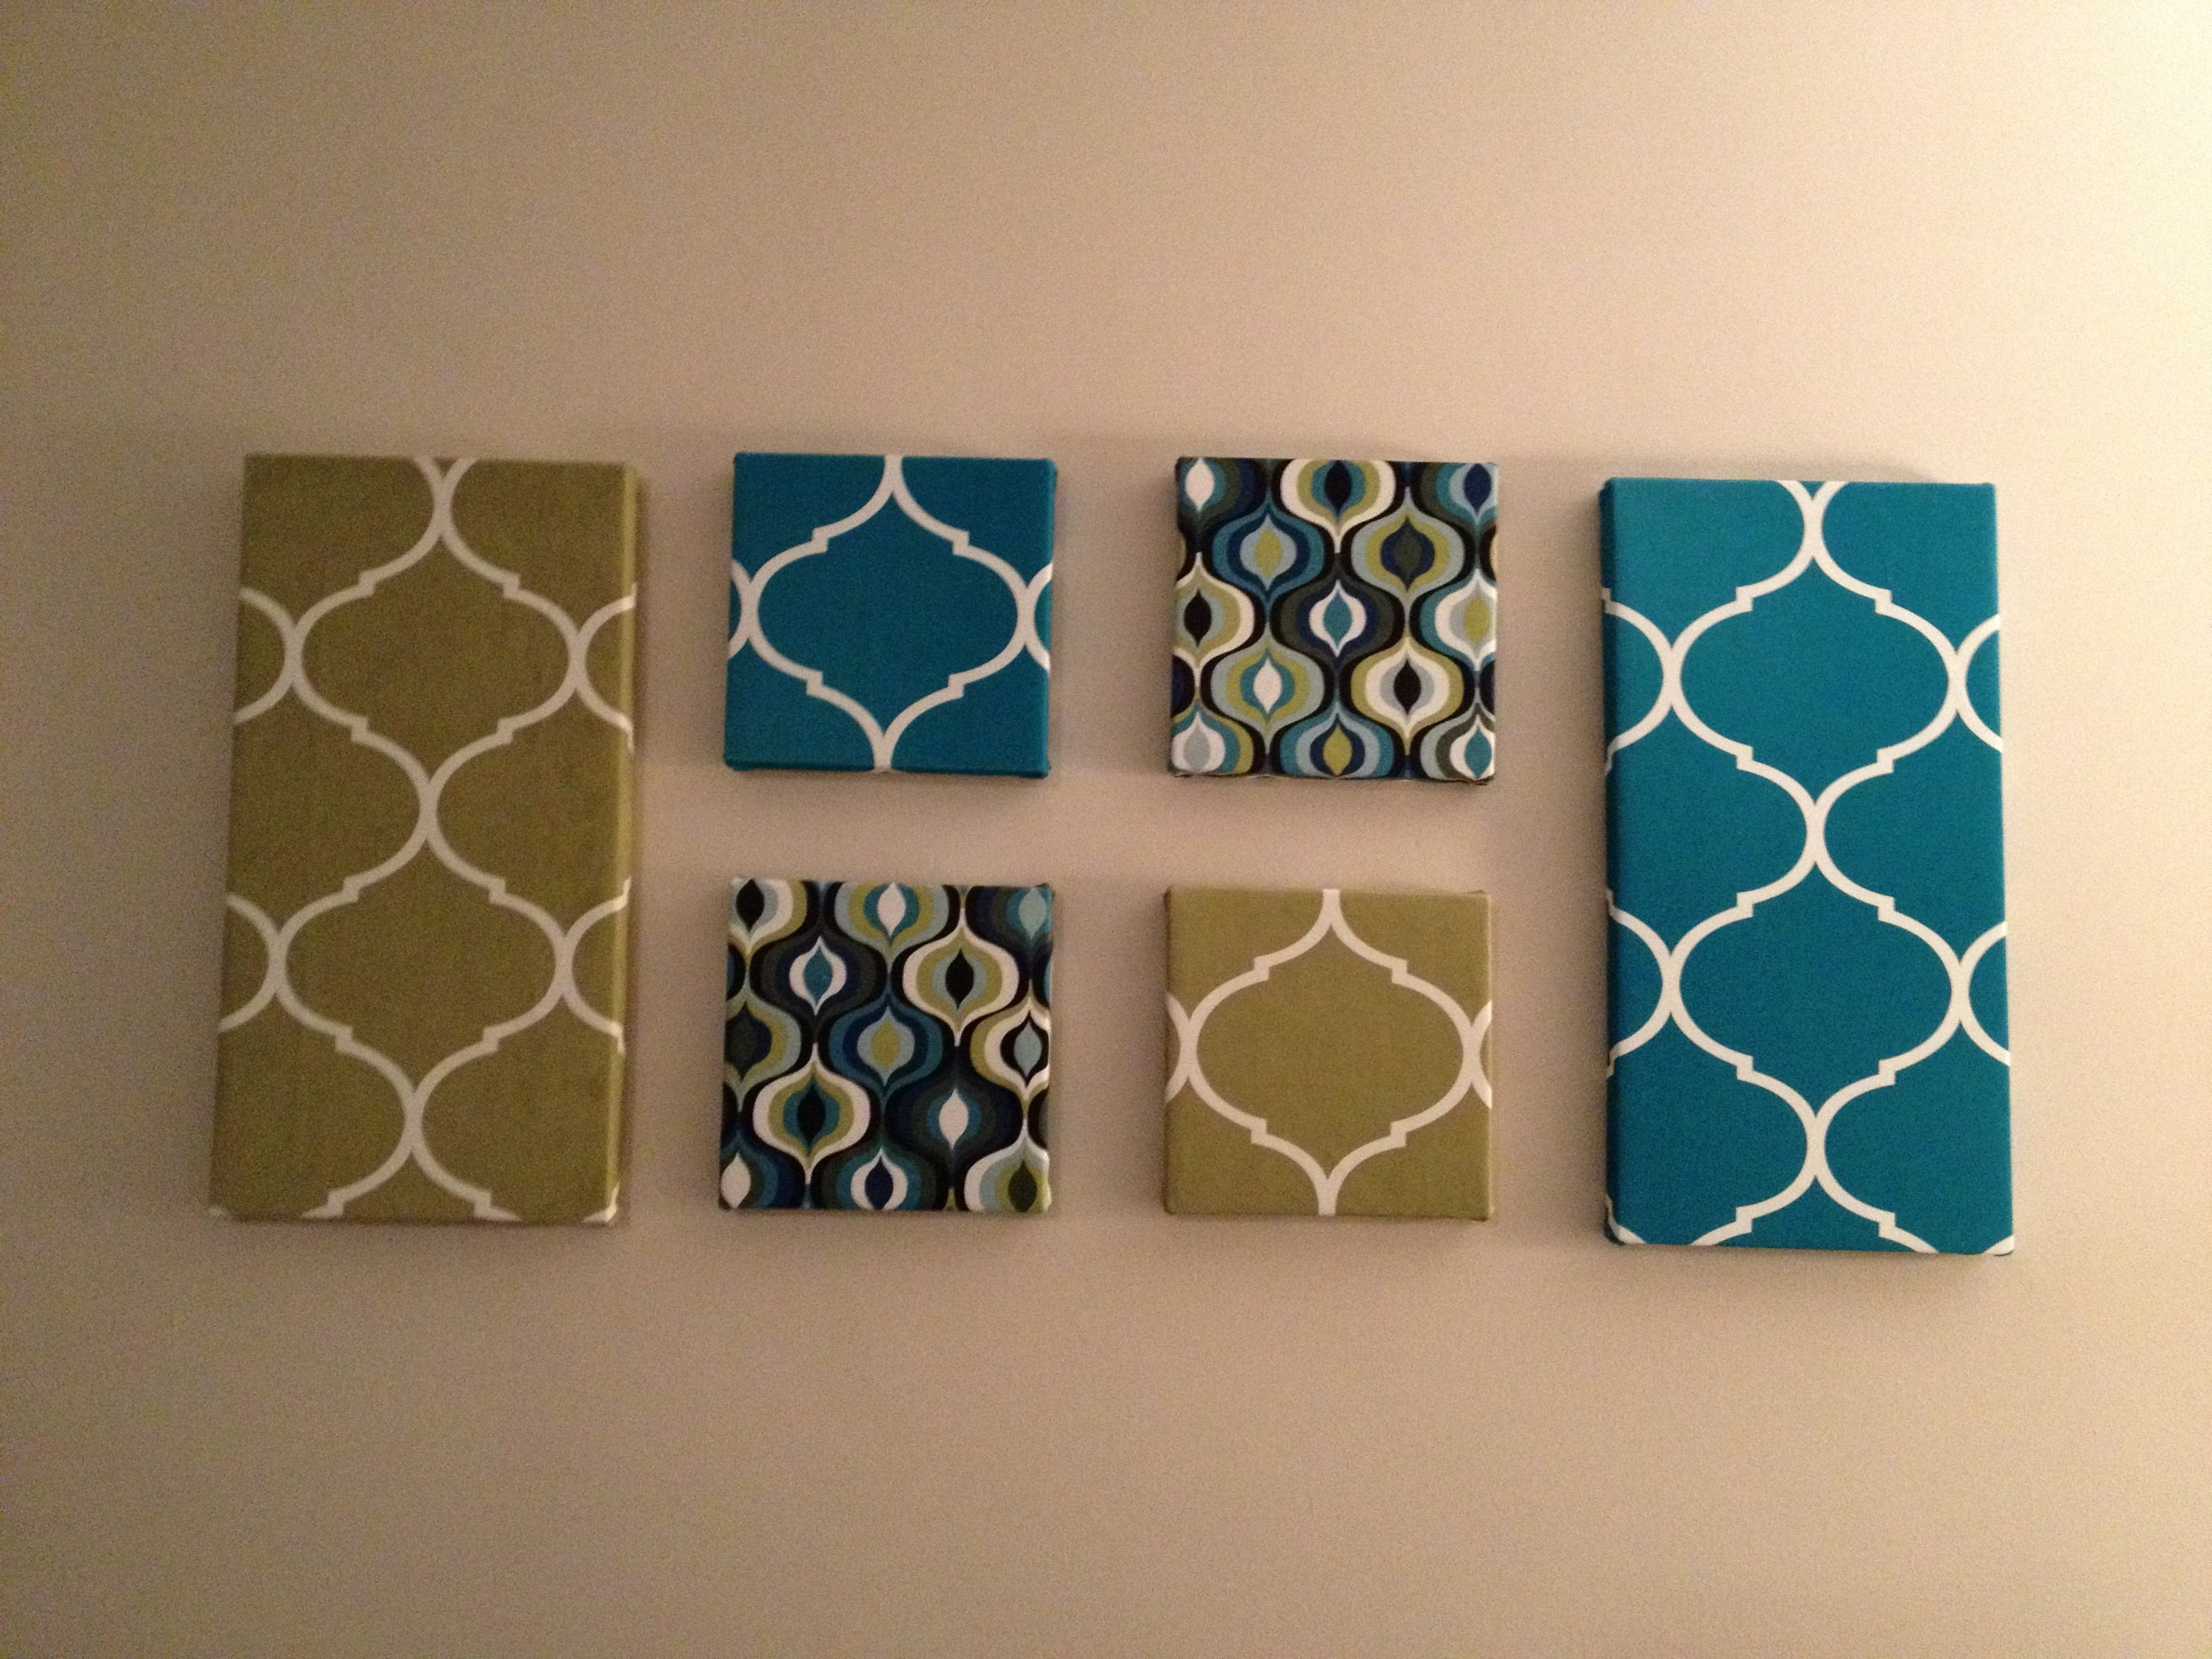 Best ideas about Fabric Wall Art . Save or Pin 15 Ideas of Fabric Wall Art Canvas Now.